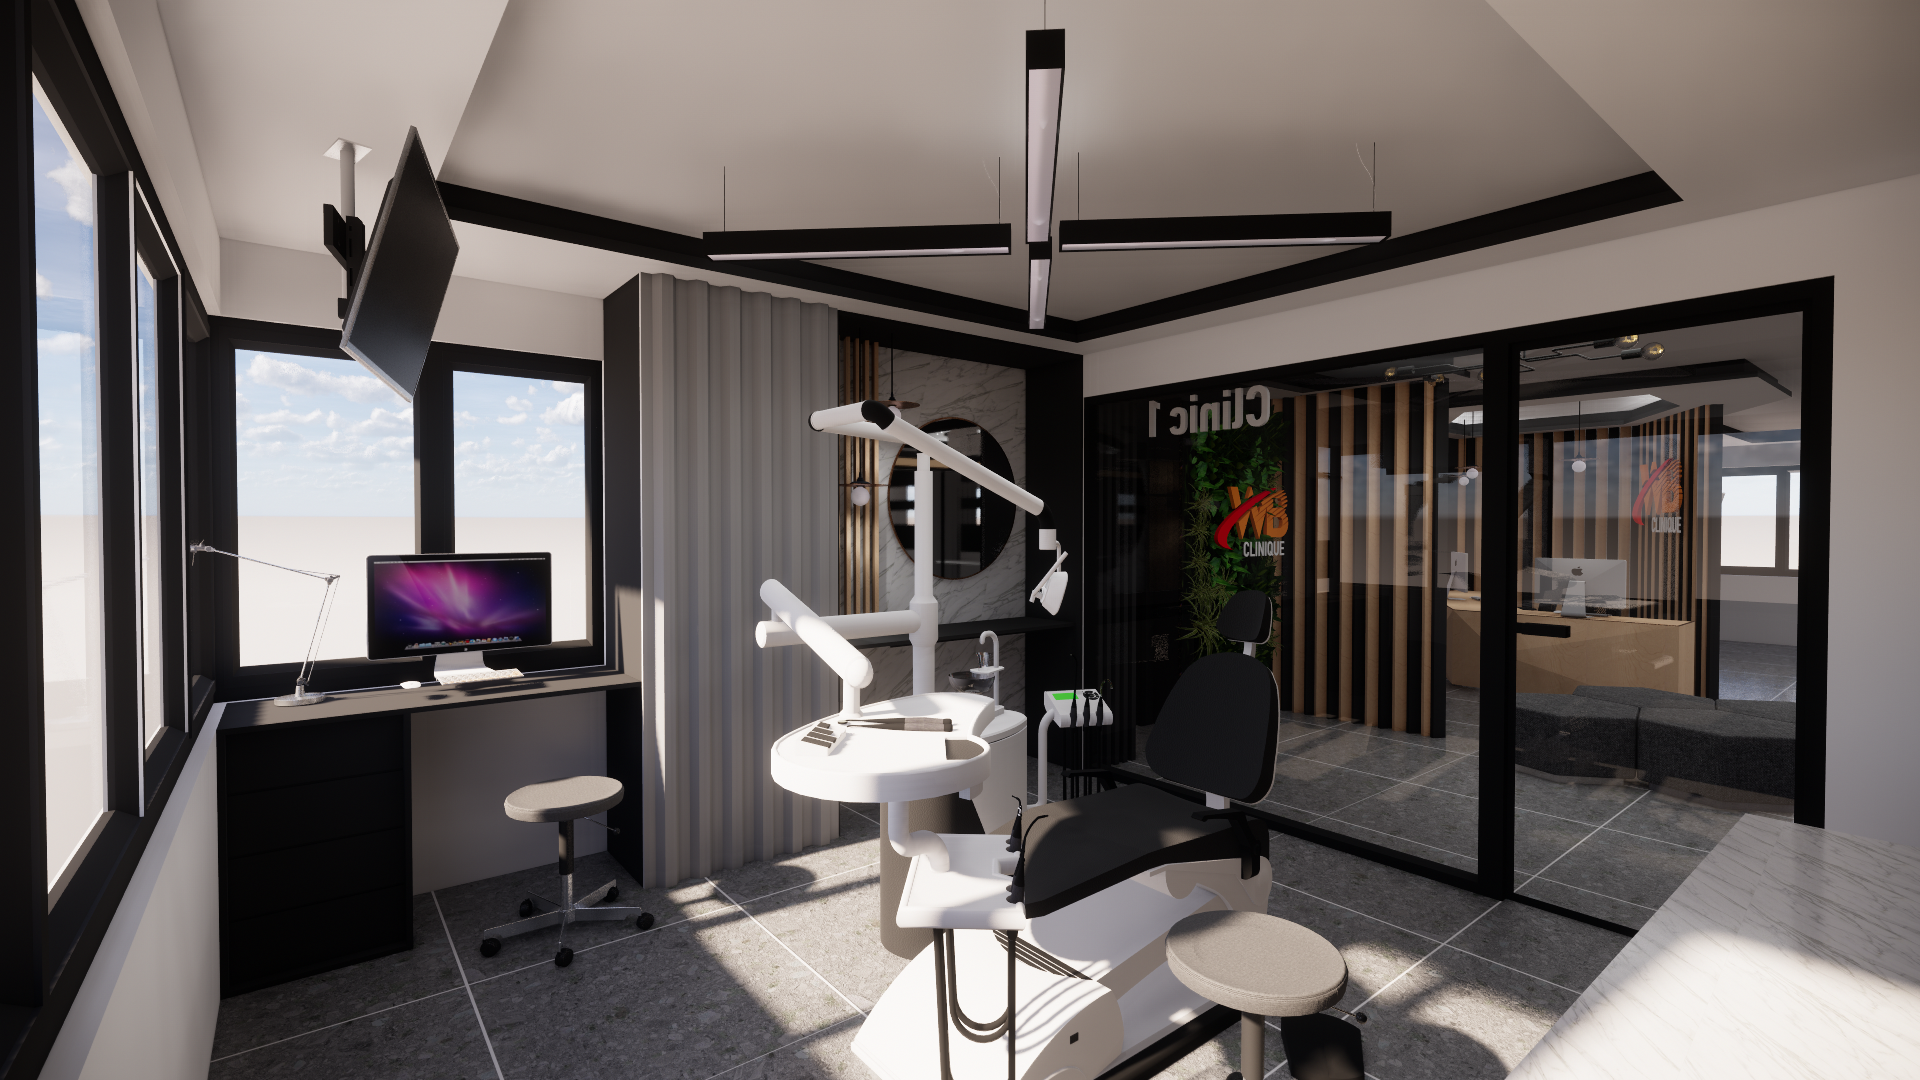 wdclinic_render_09.png